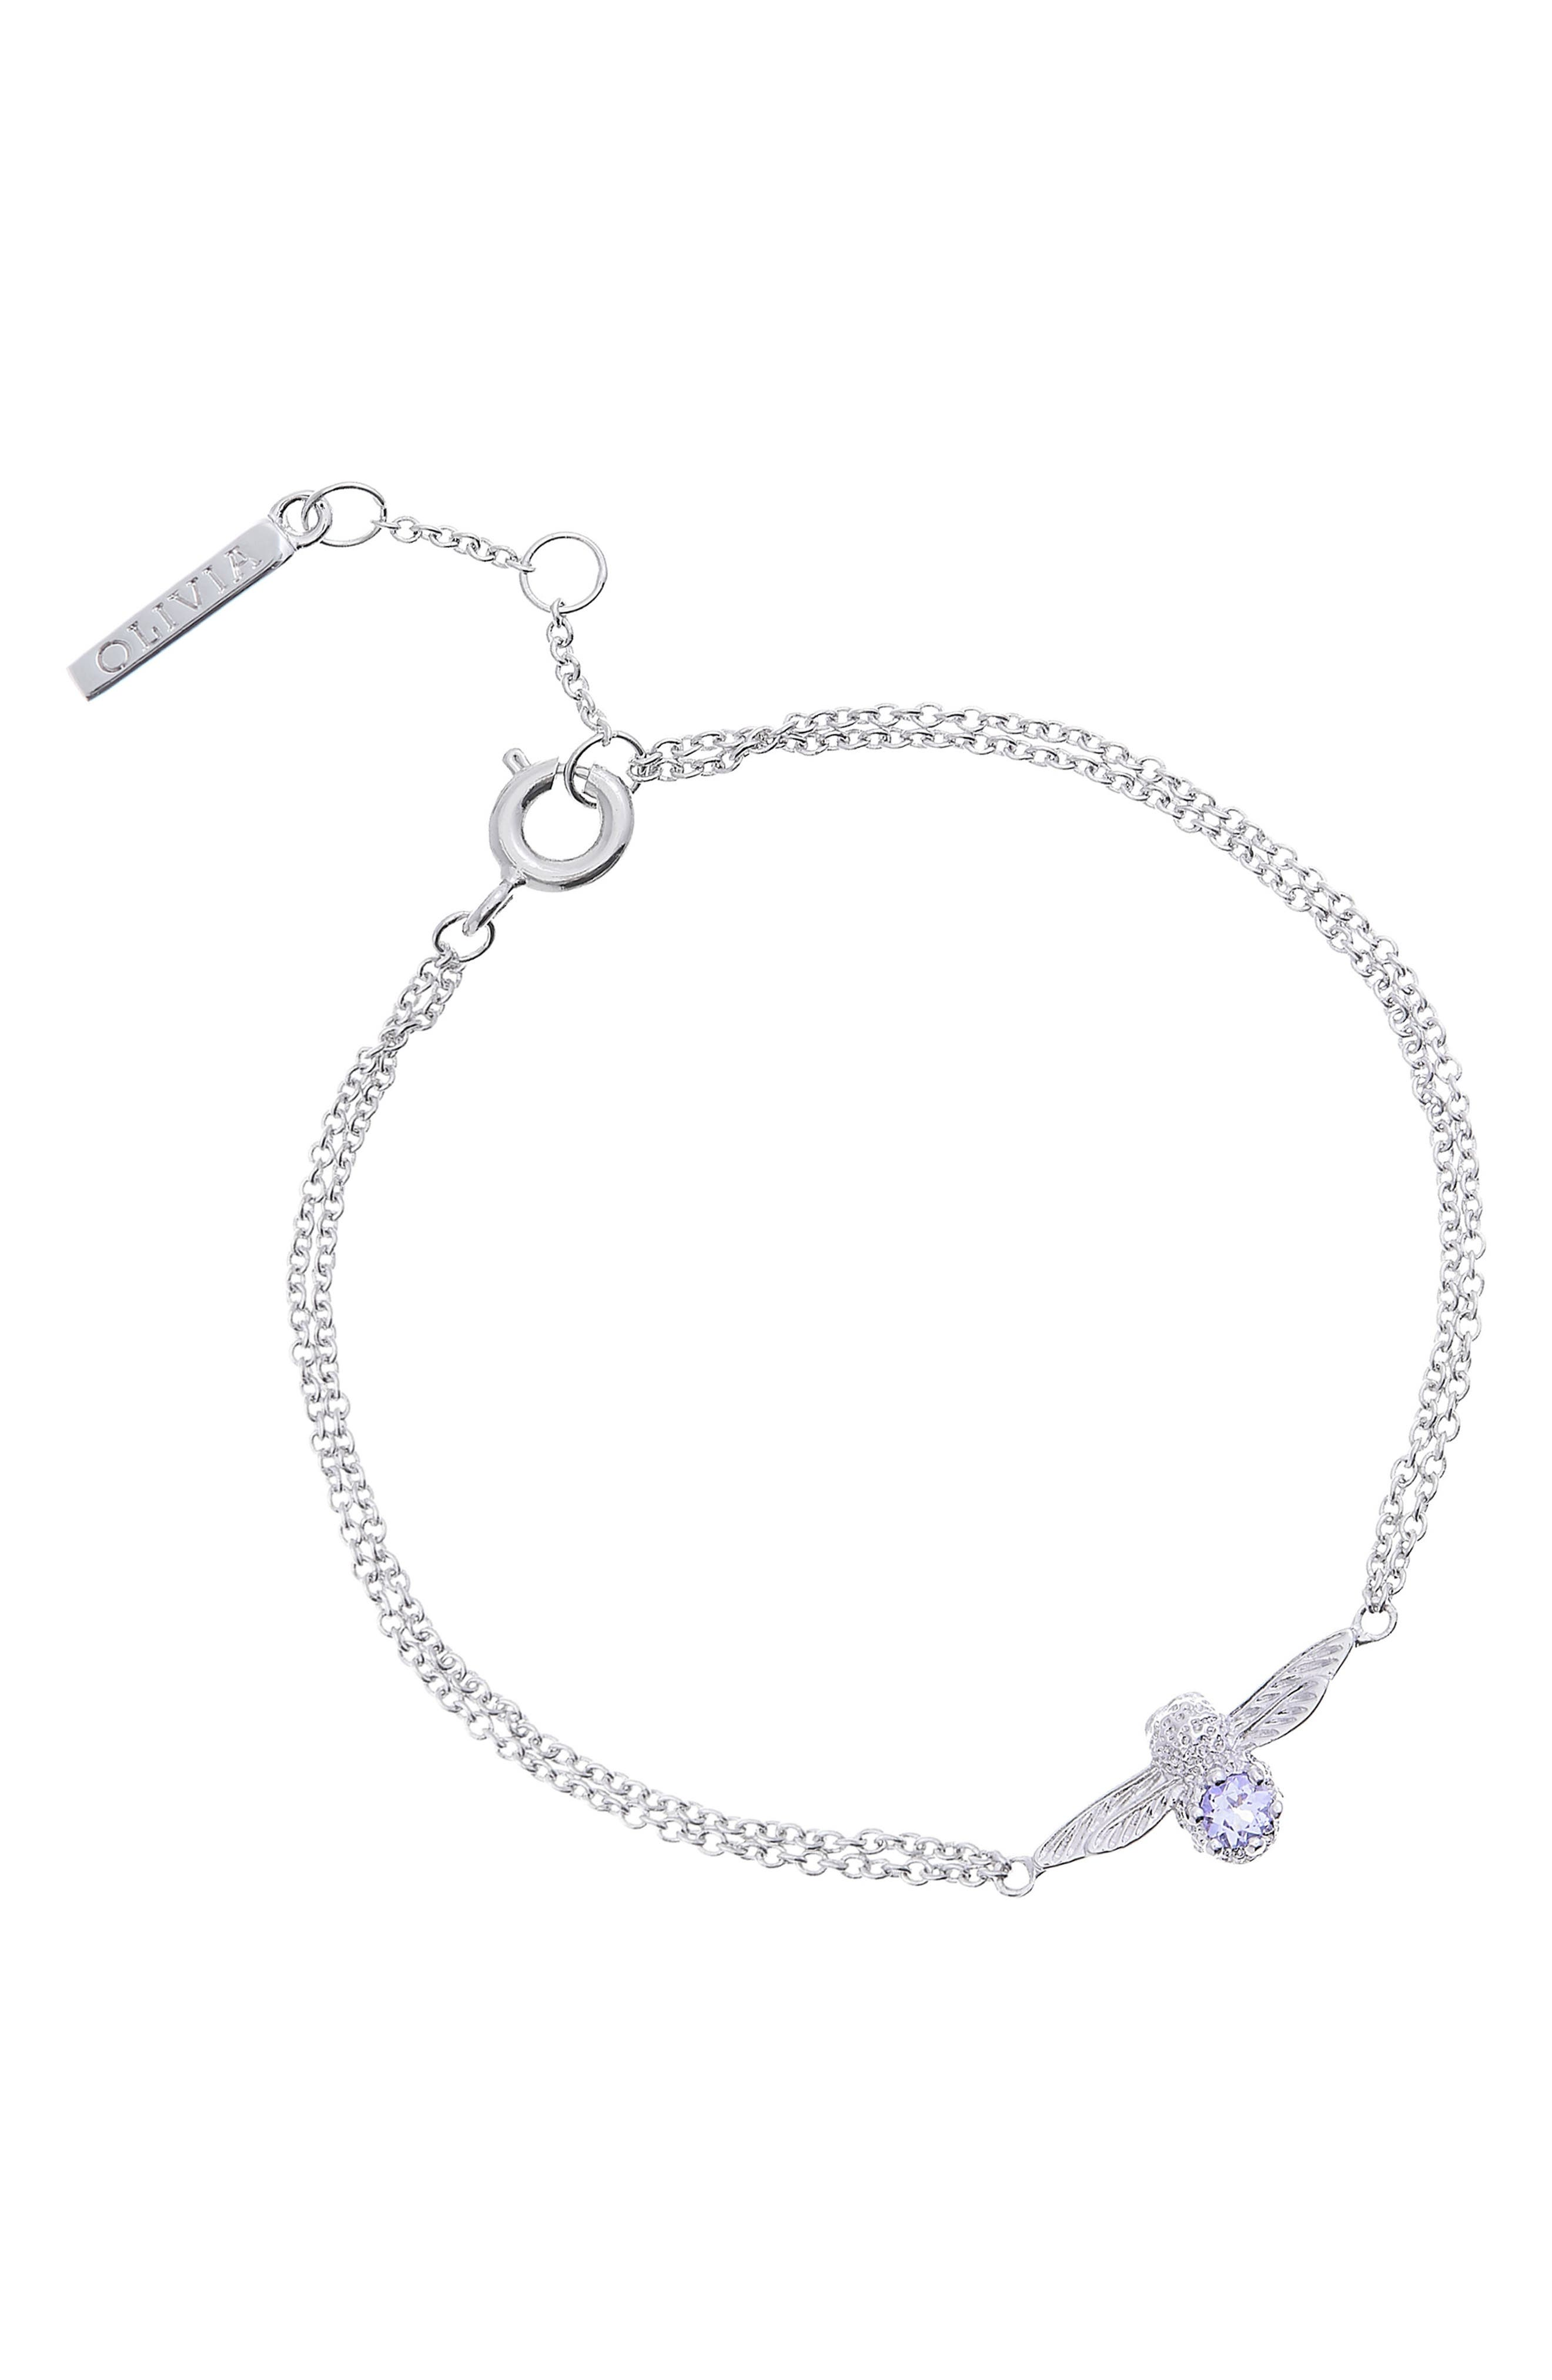 3D Bejeweled Bee Bracelet,                         Main,                         color, TWO TONE-SILVER / TANZANITE